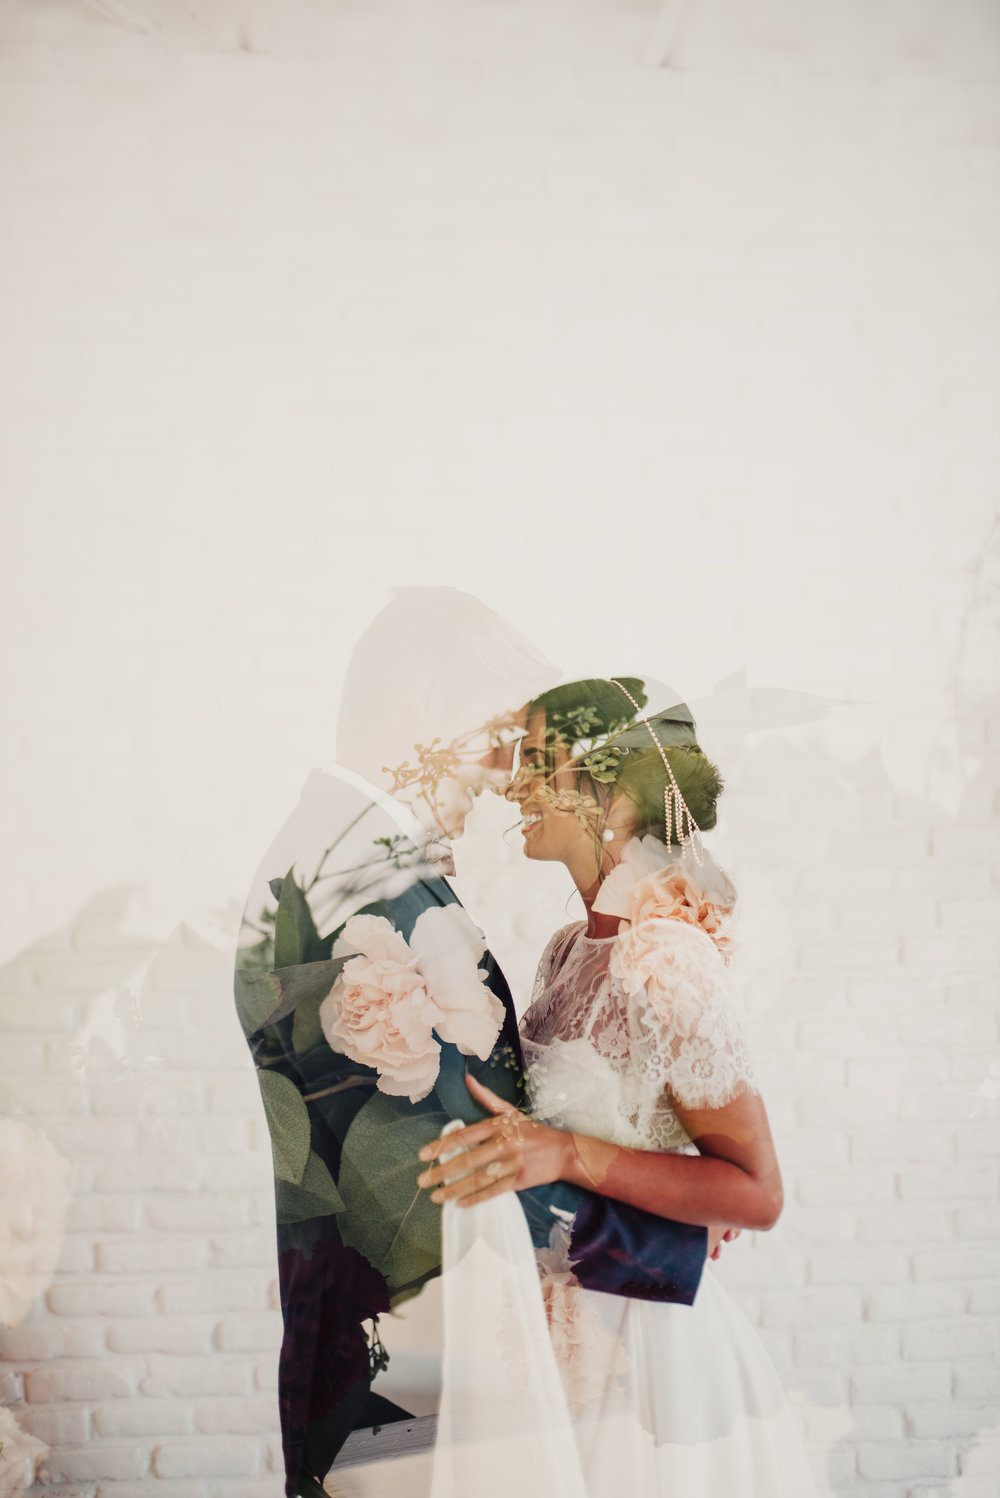 boho-bride-double-exposure-bridals.jpg